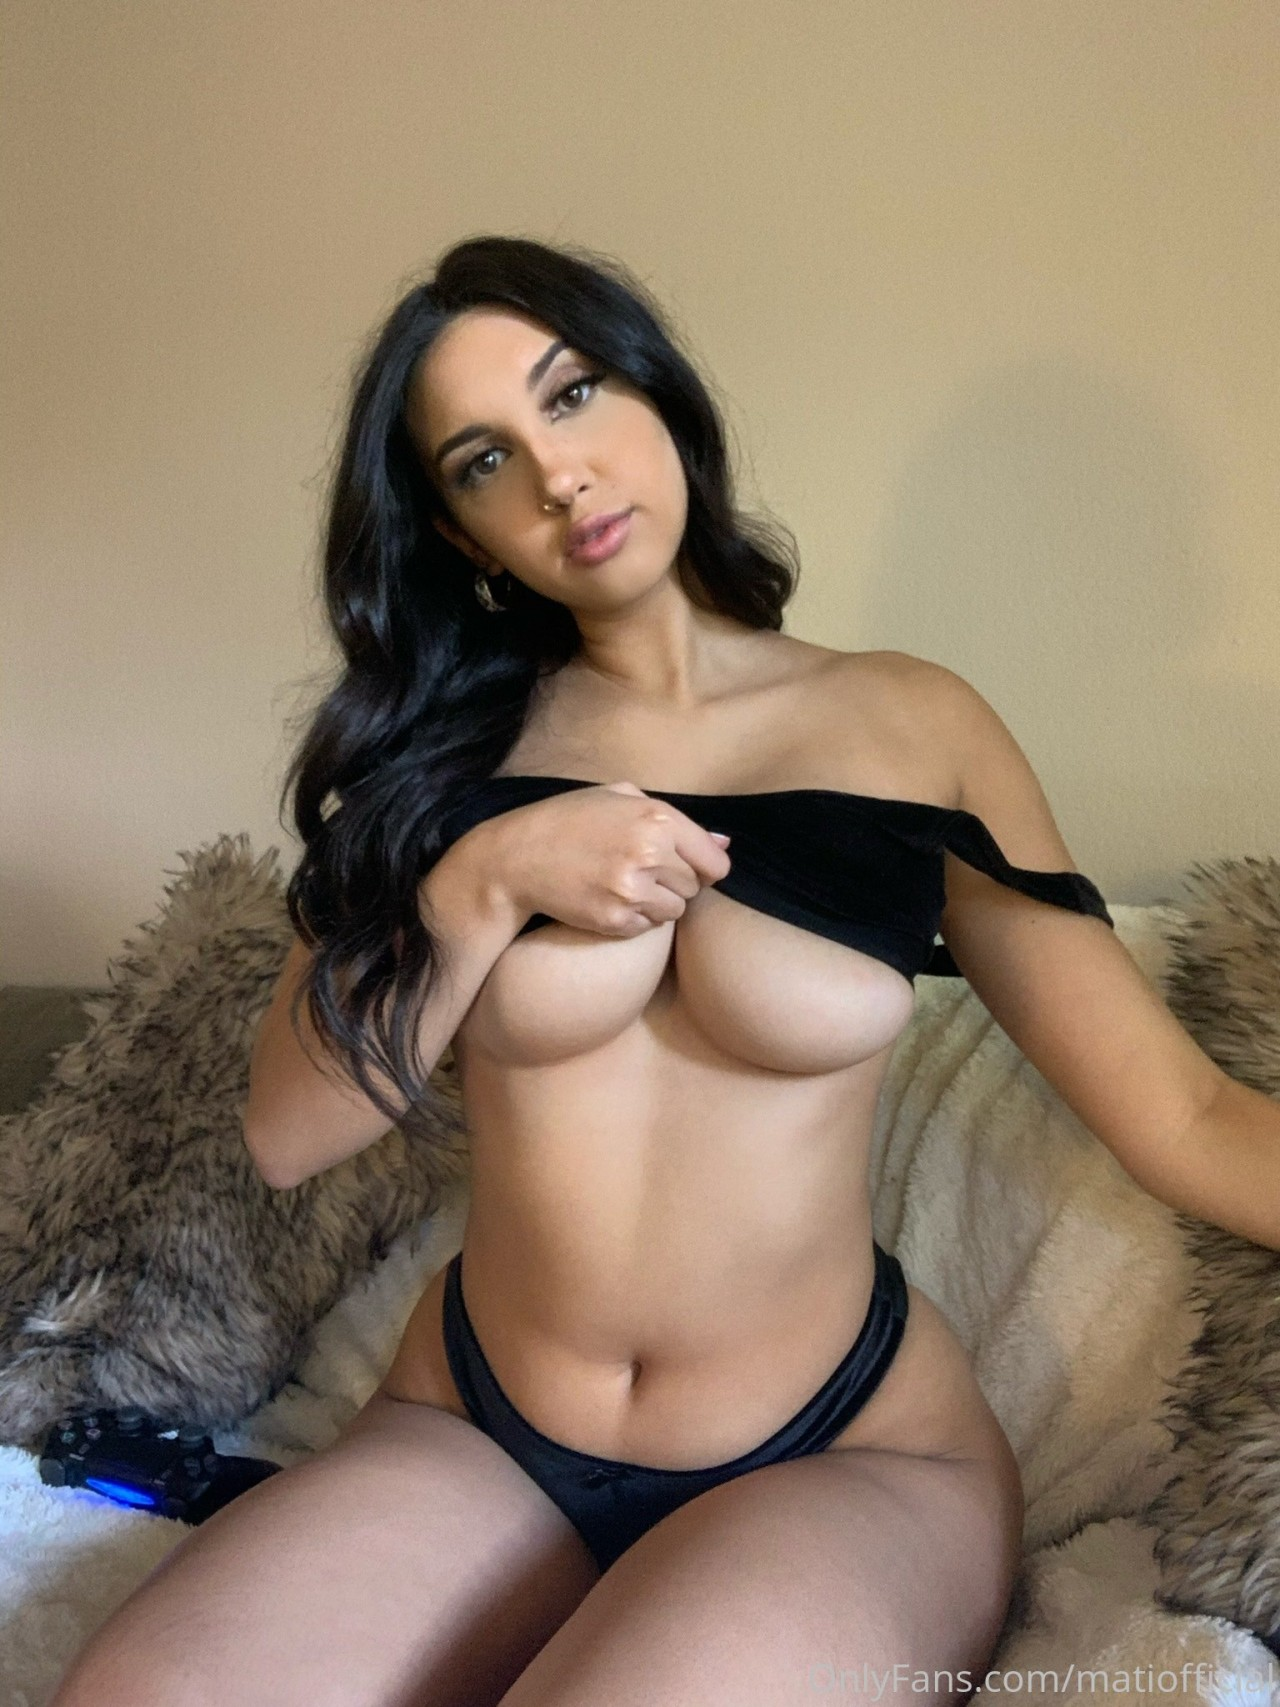 Matiofficial - Mati 16 09 2020 - onlyfans SiteRip